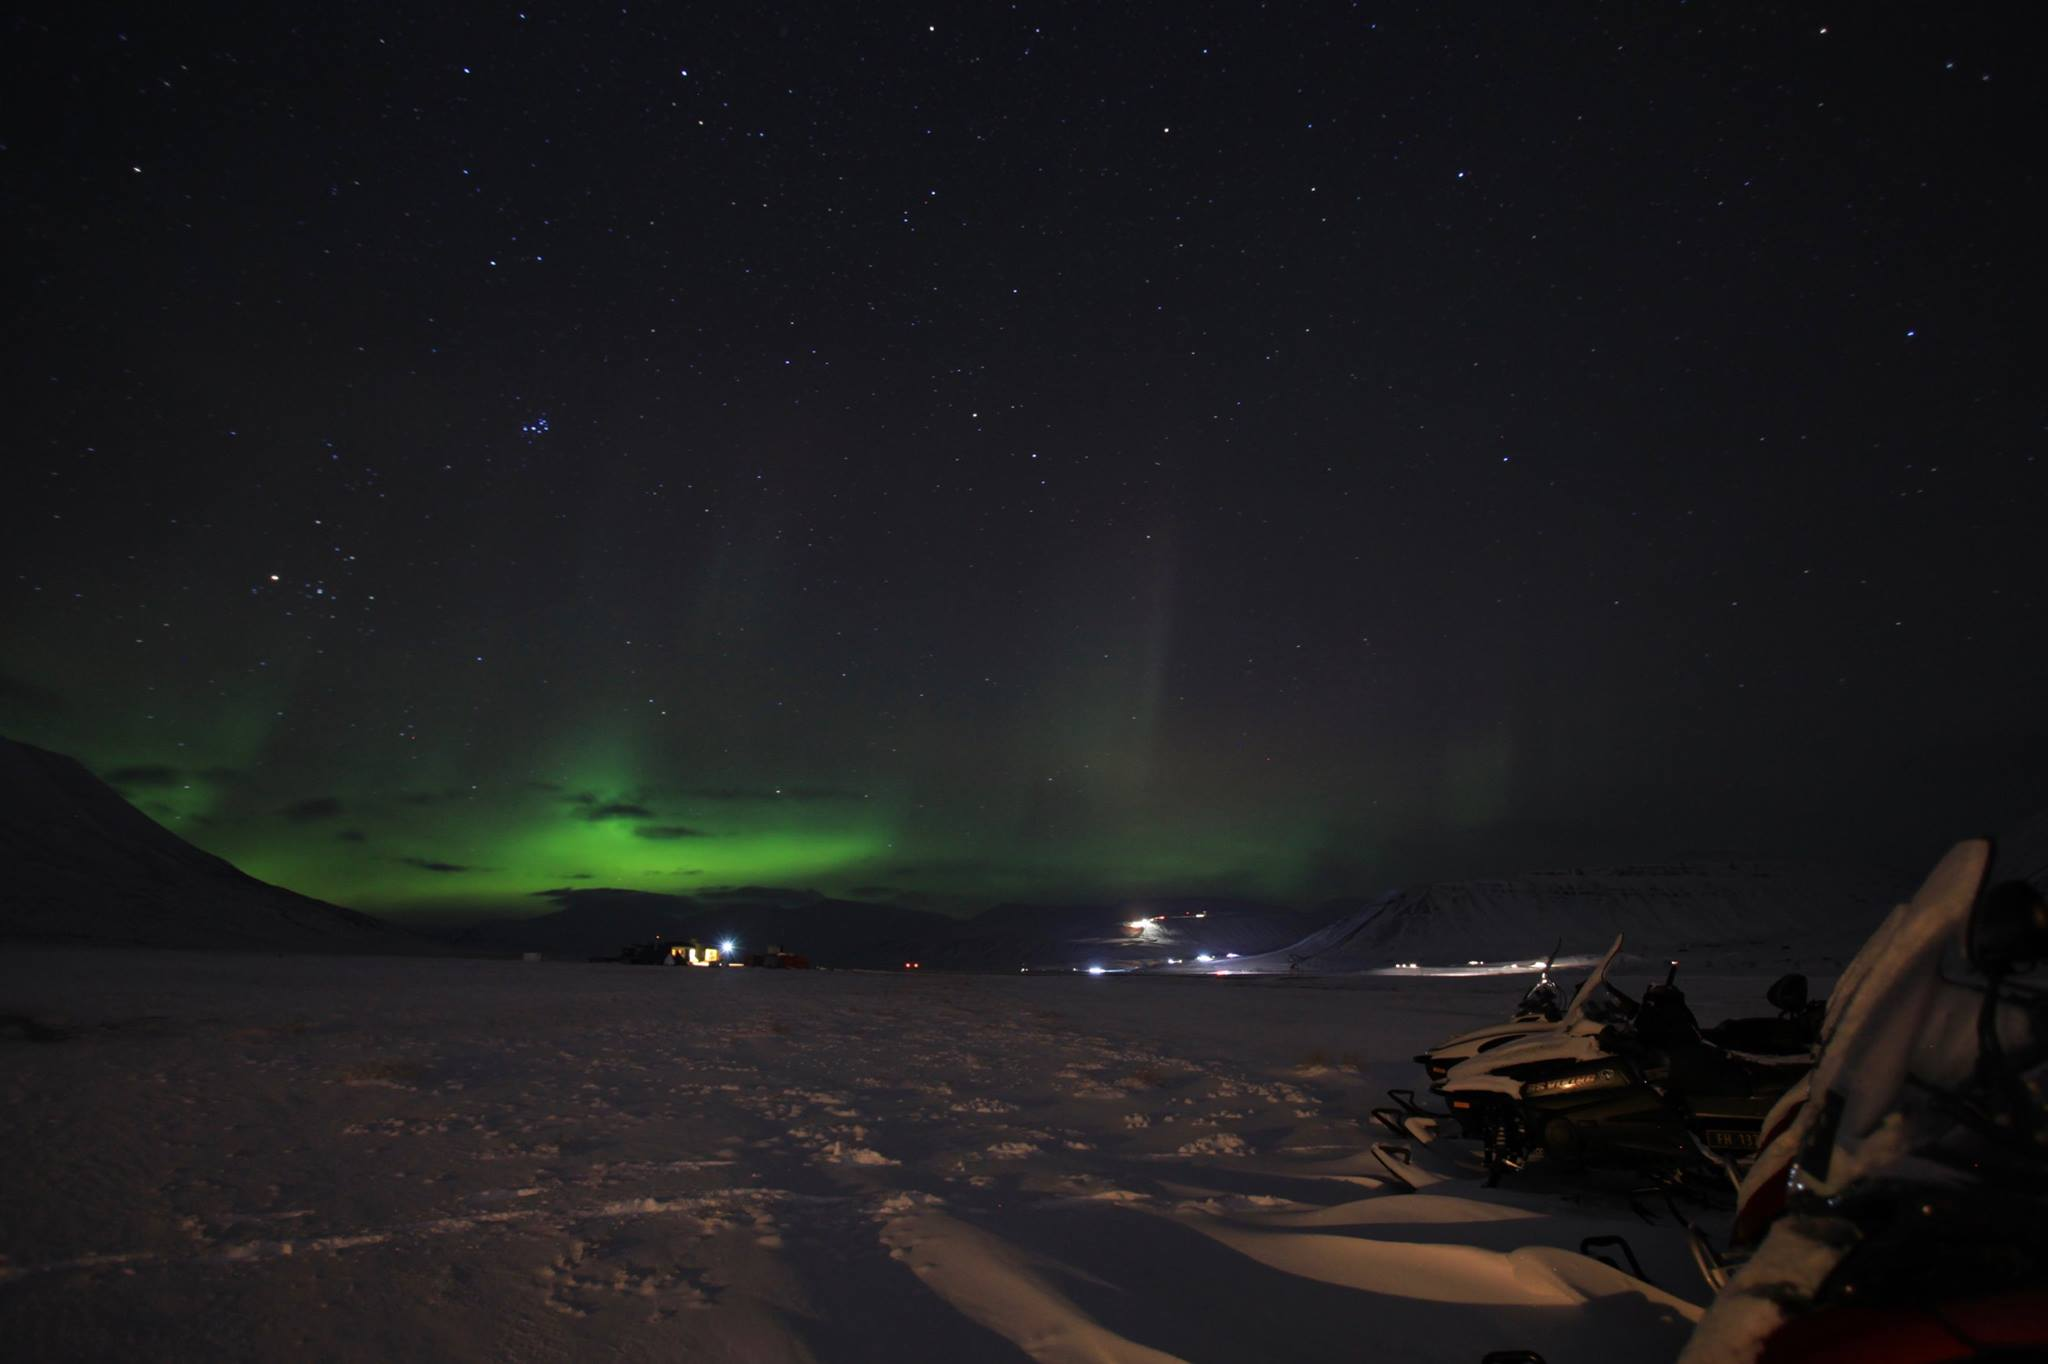 Polar night: Hunting Northern Lights on a guided snowmobile trip